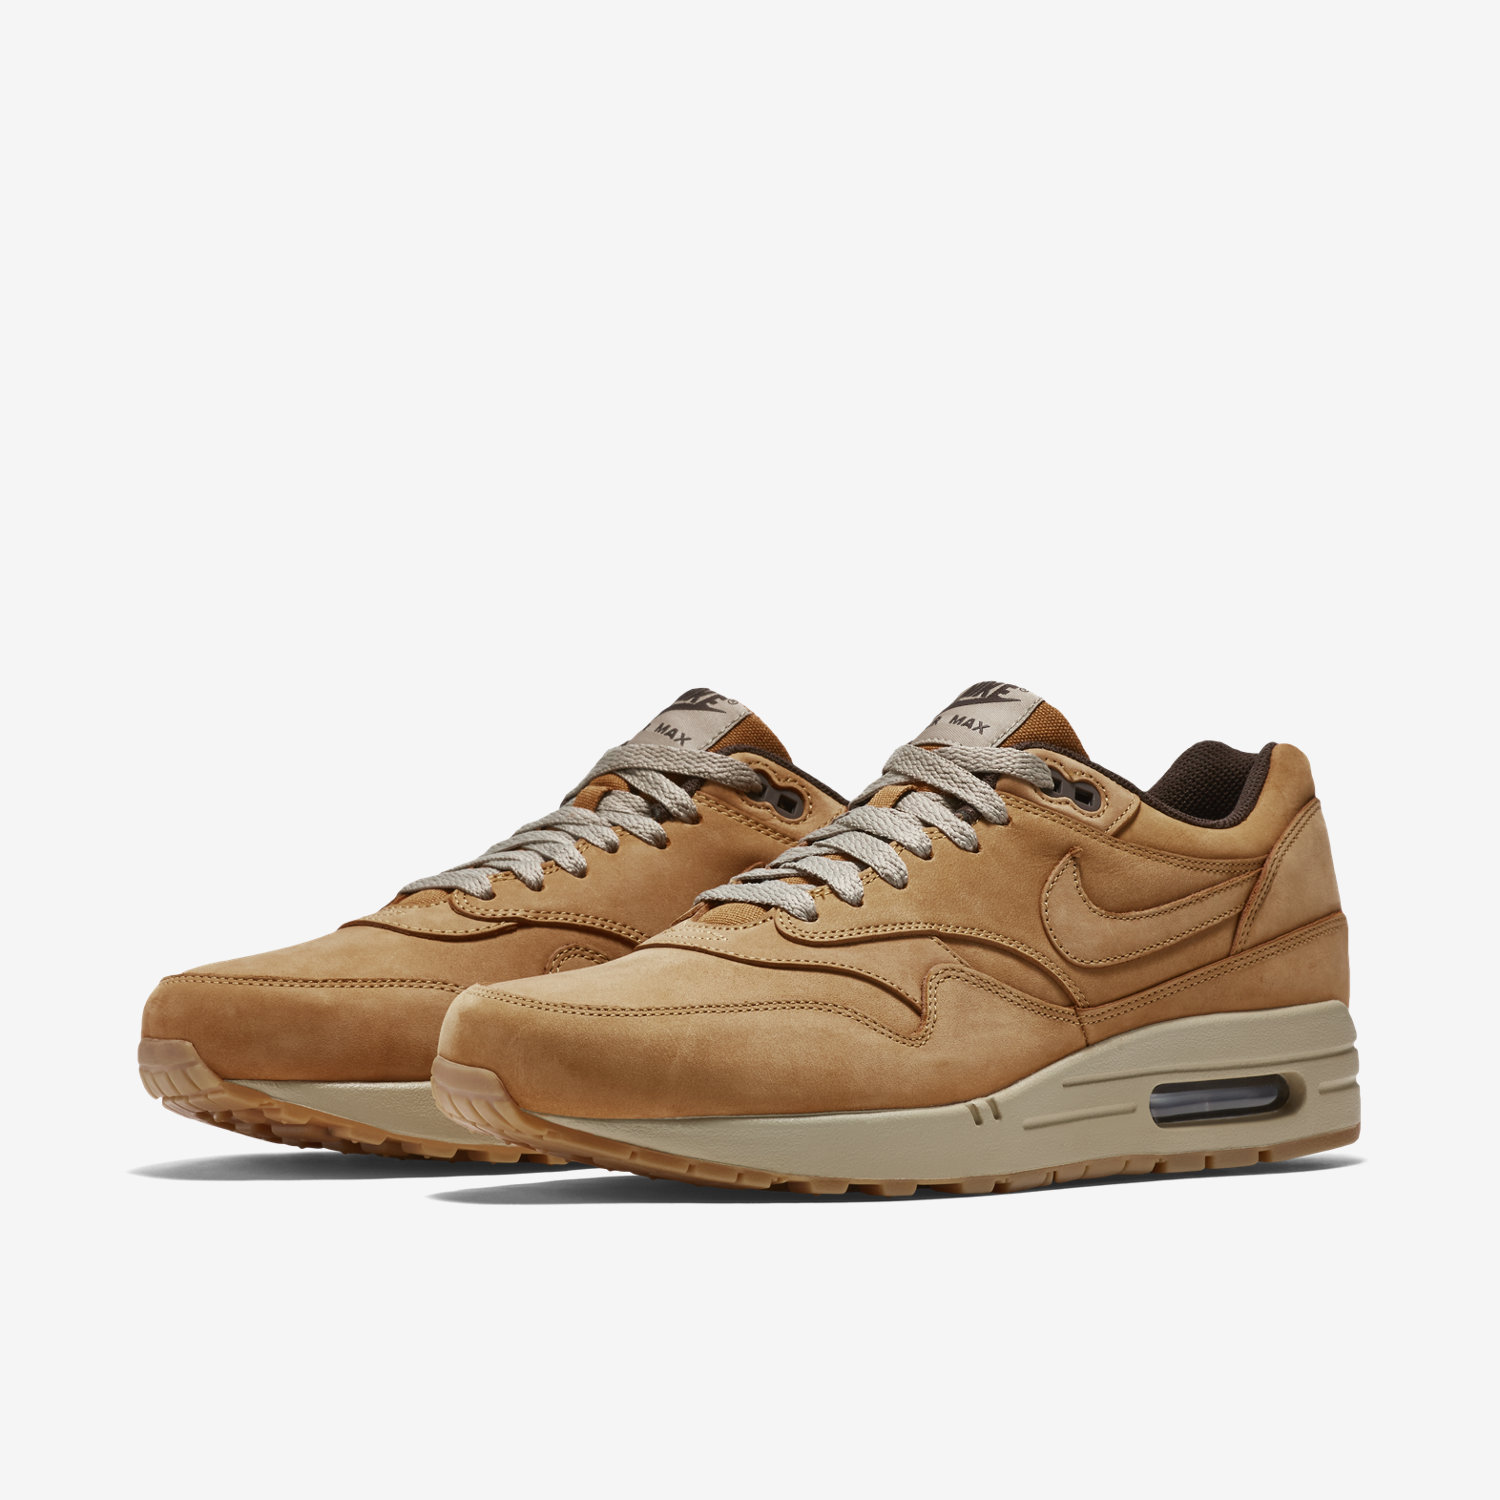 Cheap Nike Air Max 1 Pinnacle Pink Sneakers 859554 600 Caliroots